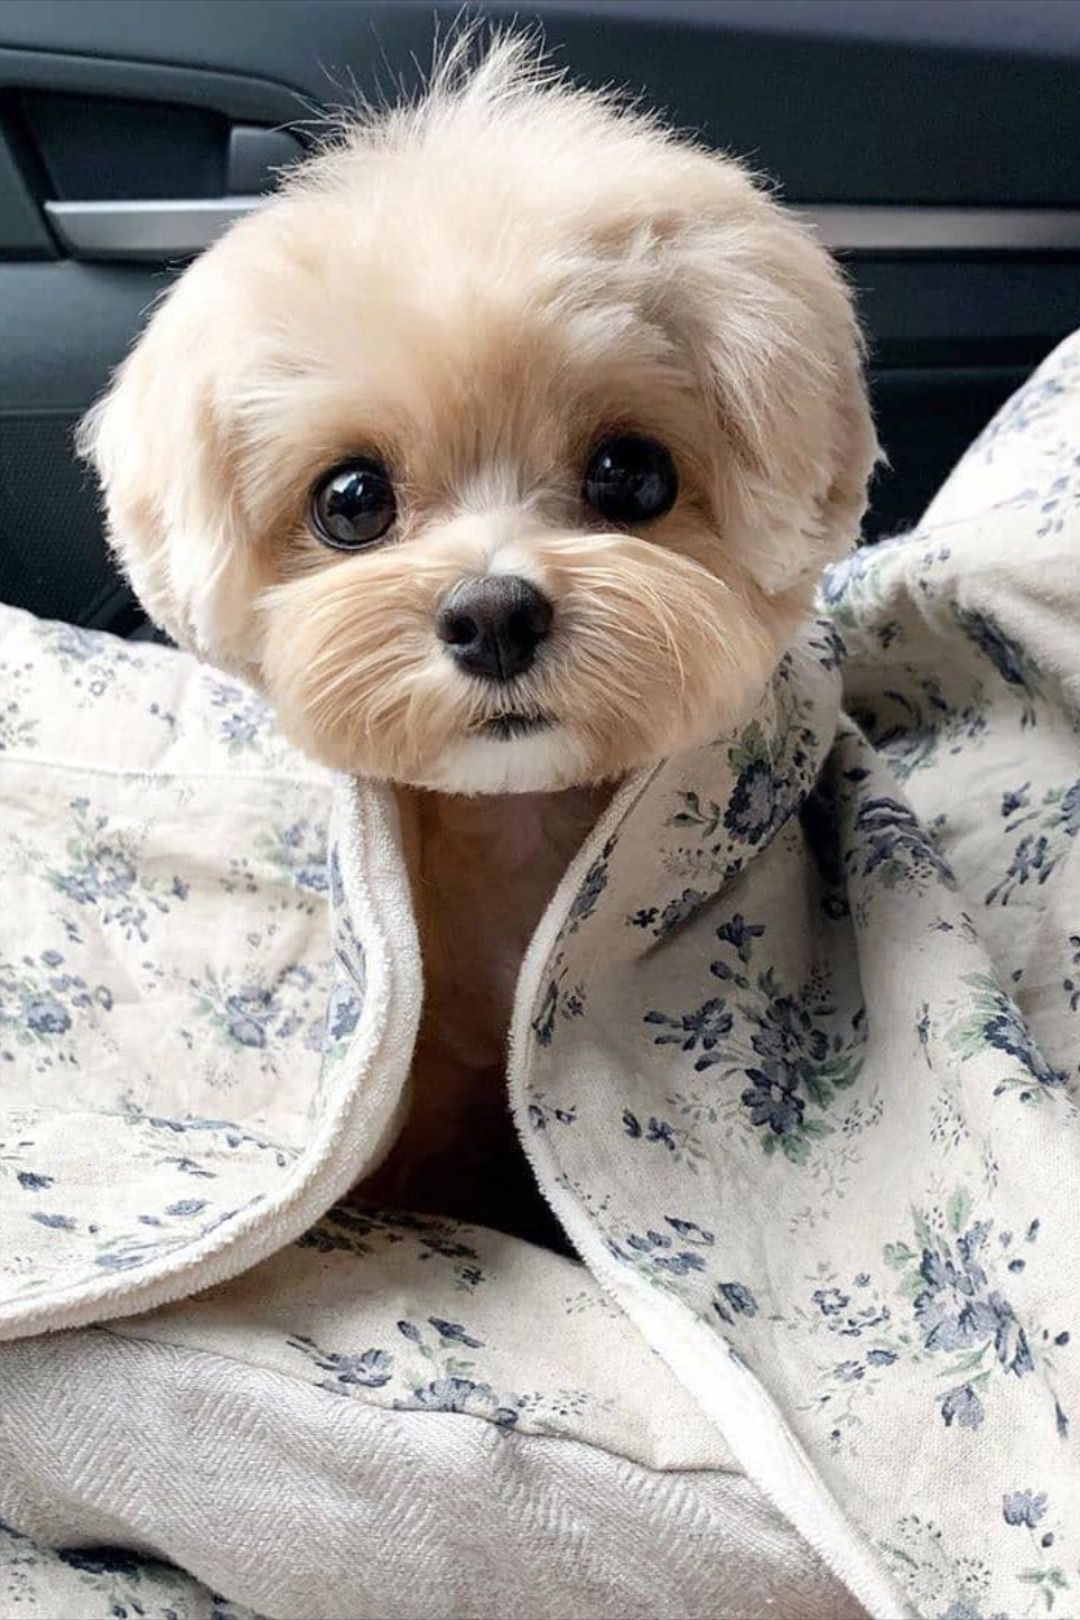 Pin By Kathrine Howard On Awwwww In 2020 Cute Animals Cute Dogs Breeds Cute Dogs And Puppies